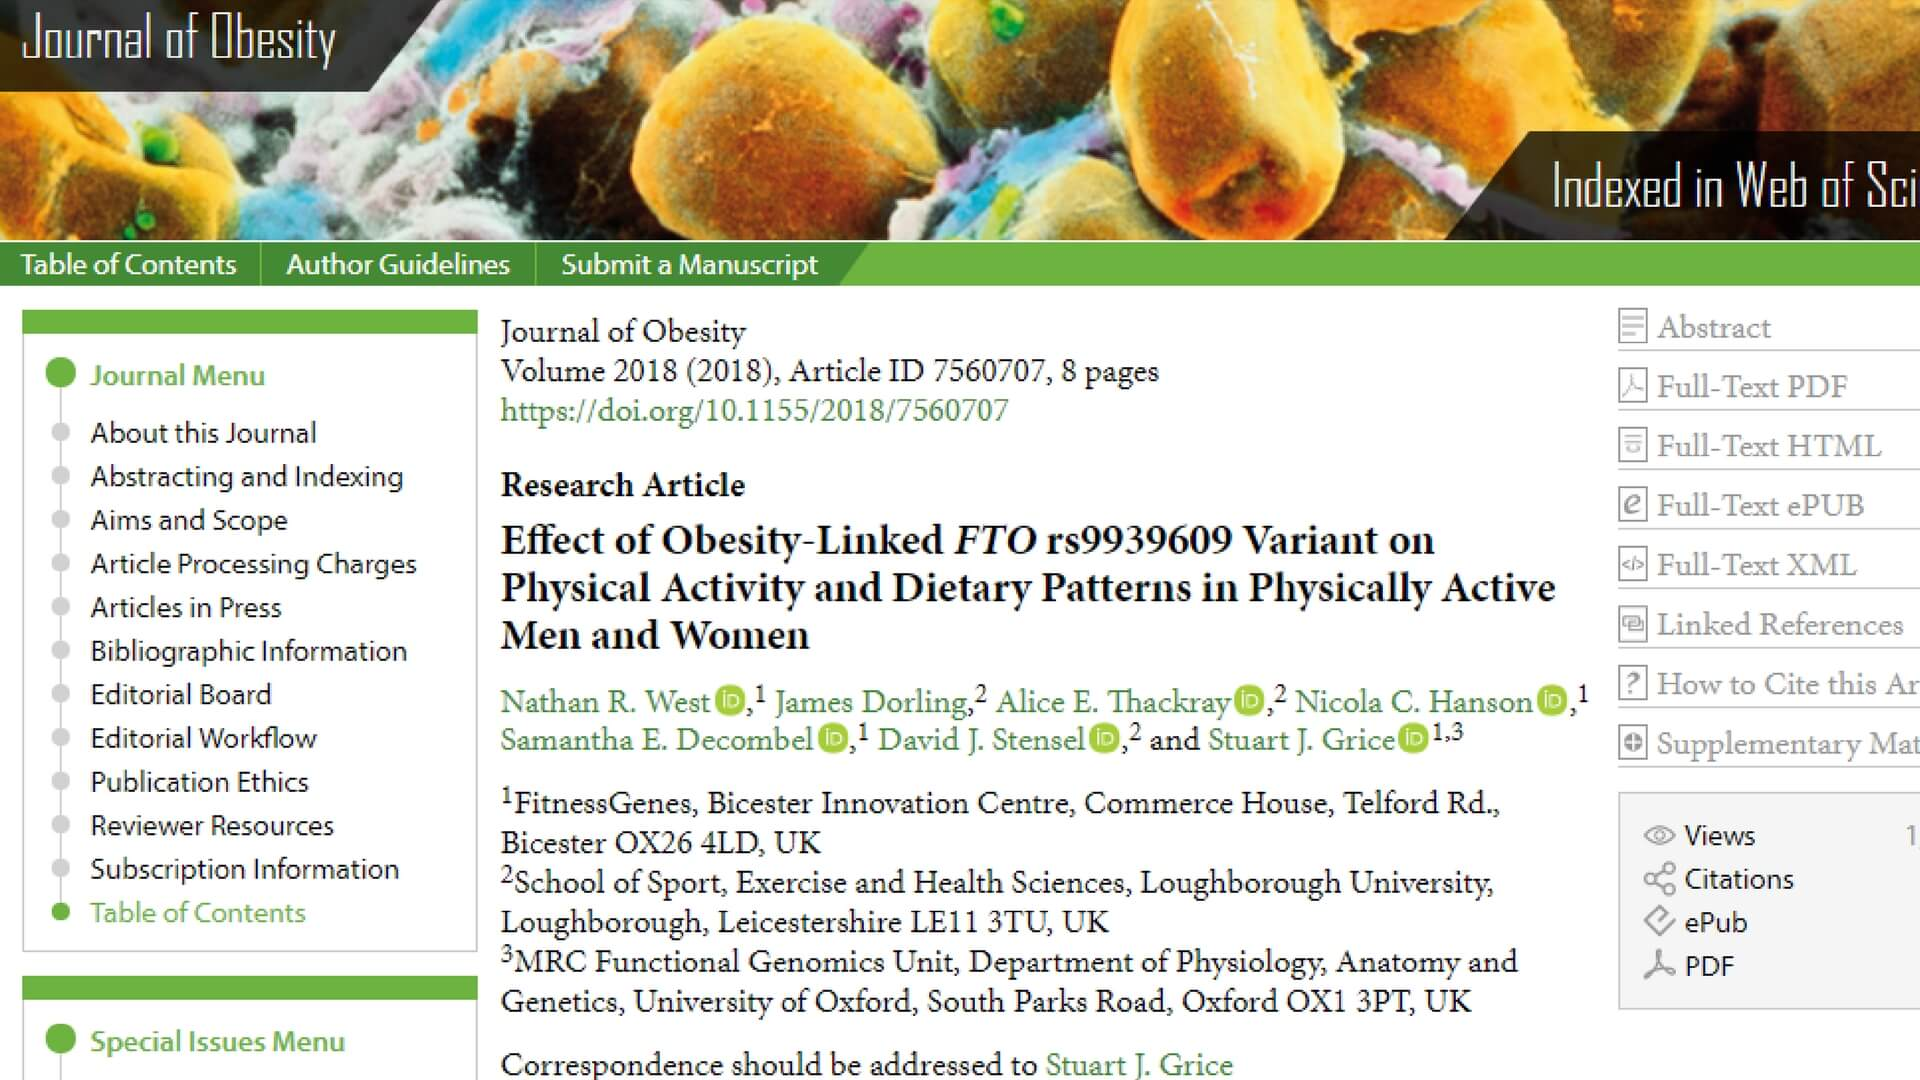 Journal of Obesity